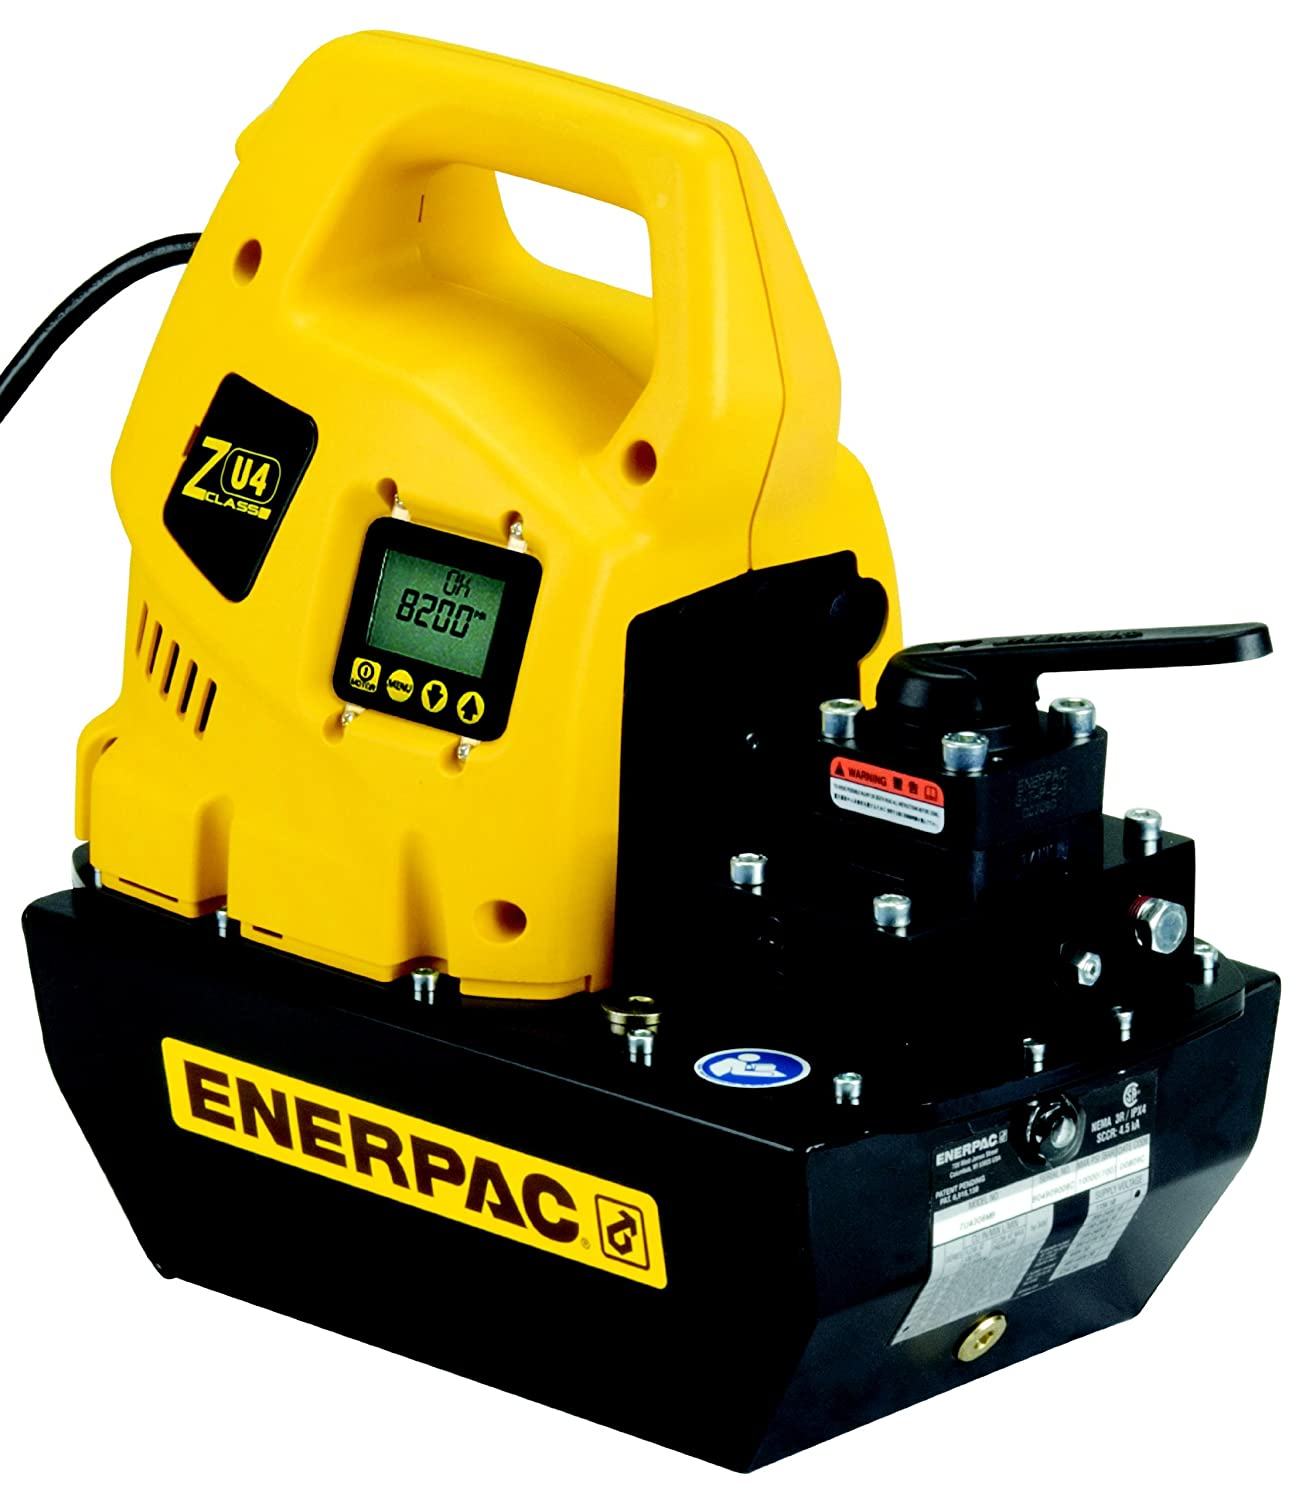 Enerpac ZU4208SB Max 68% OFF Universal Electric Pump Valv with VE32 Charlotte Mall Solenoid